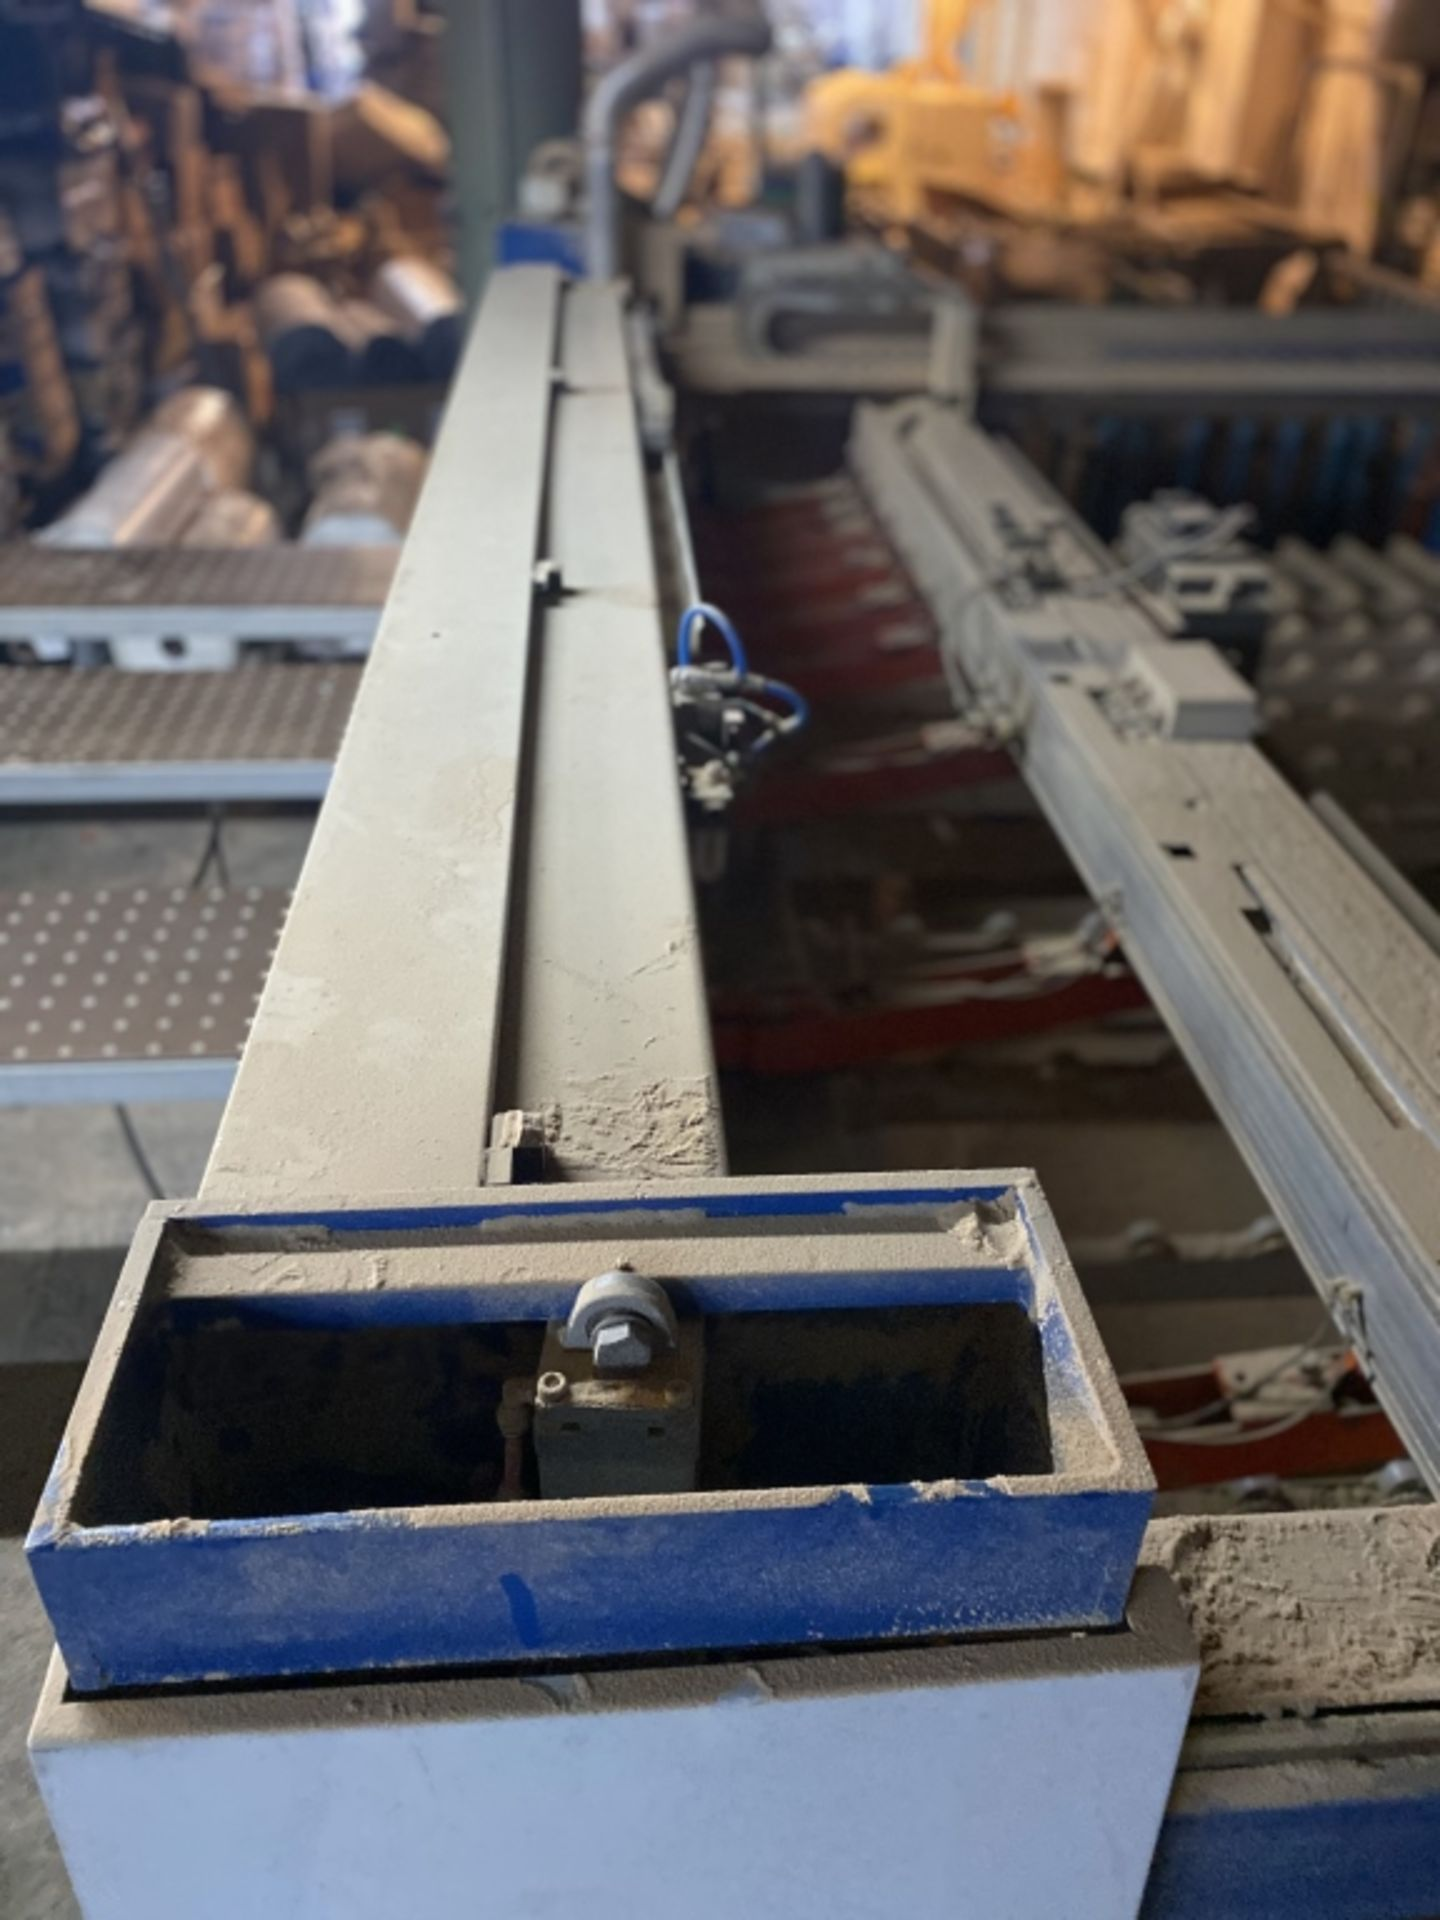 Lot 1008 - 2000 Schnelling CNC Panel Saw